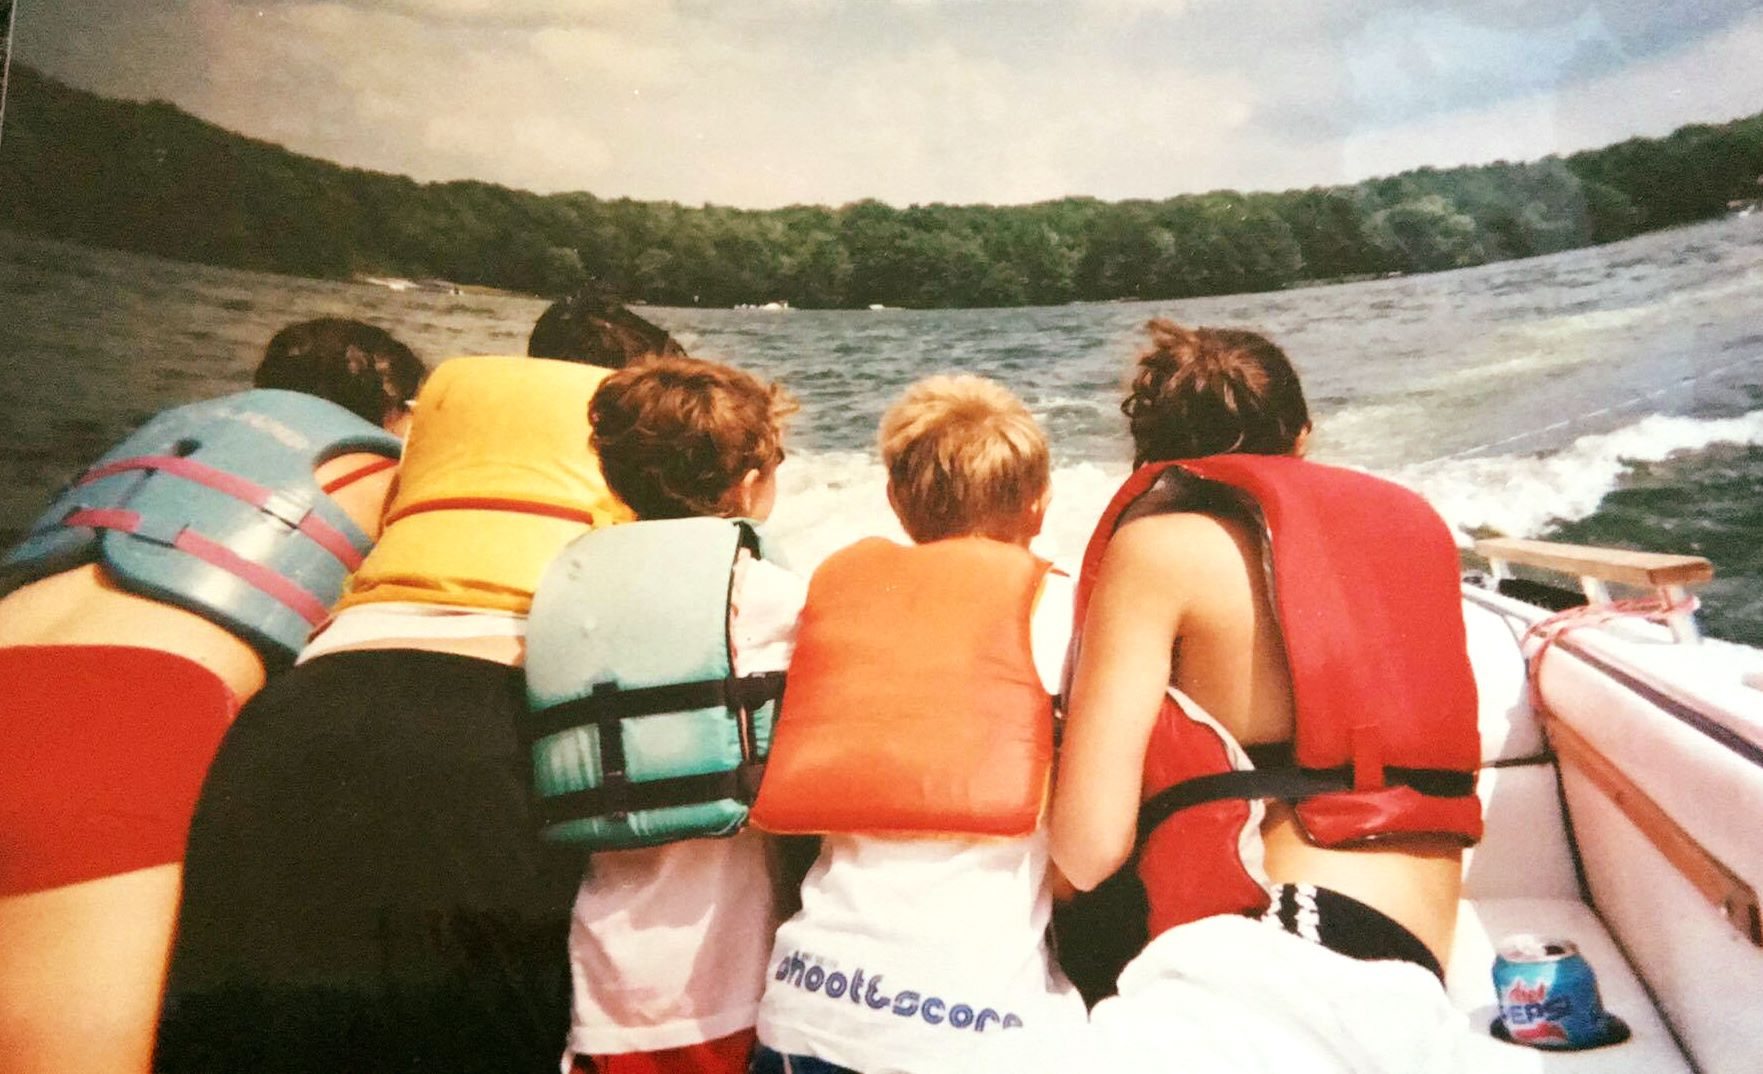 Share Your Memories of Deep Creek Lake